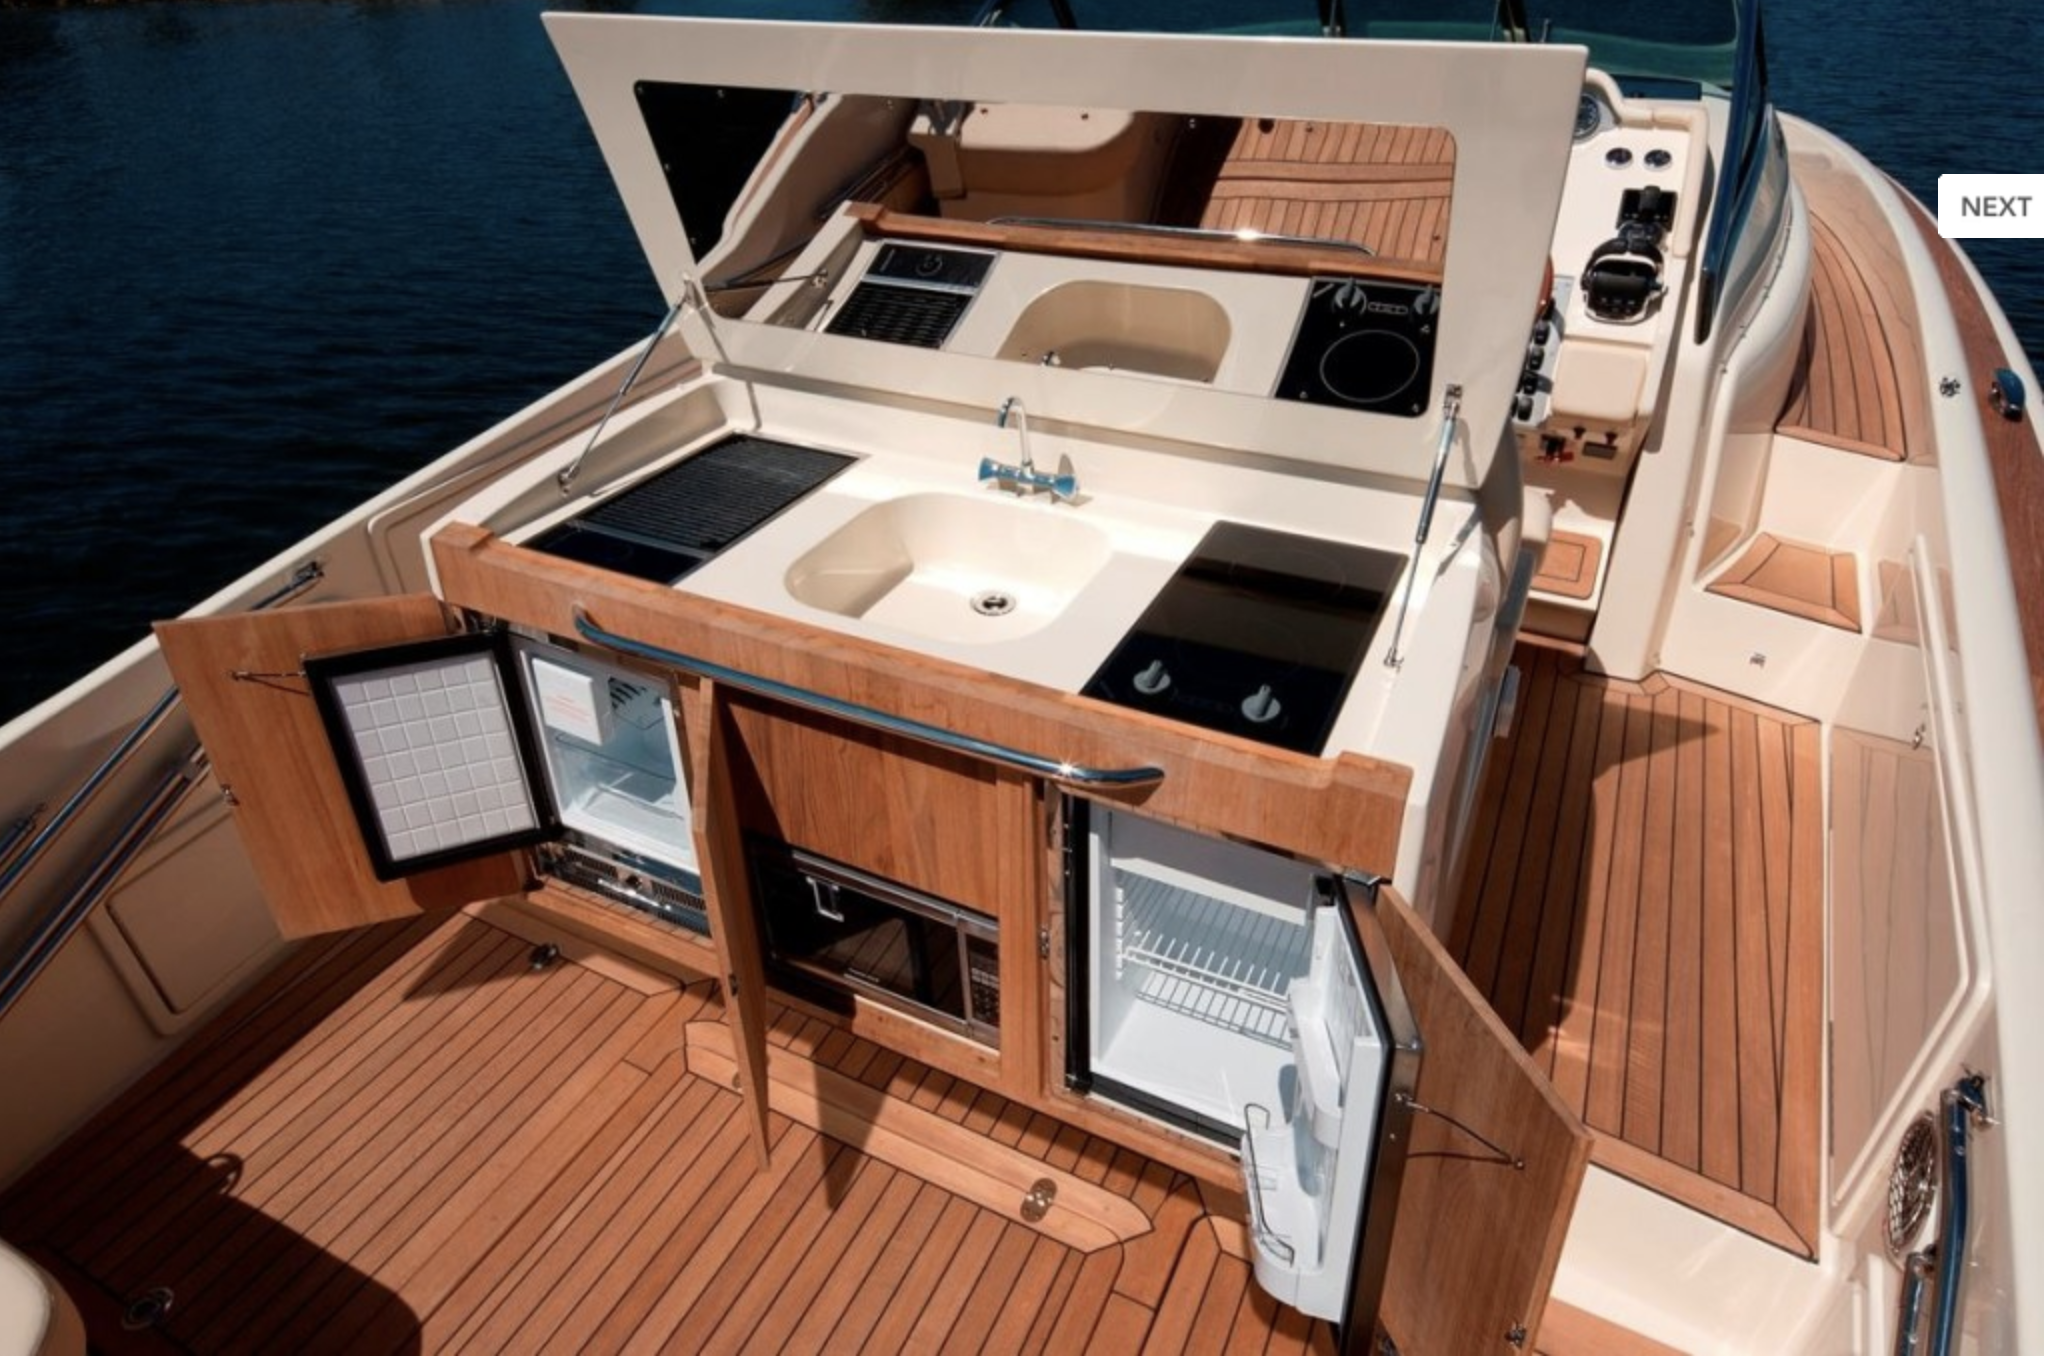 Ceramic cooktops  have been perfected for marine applications.